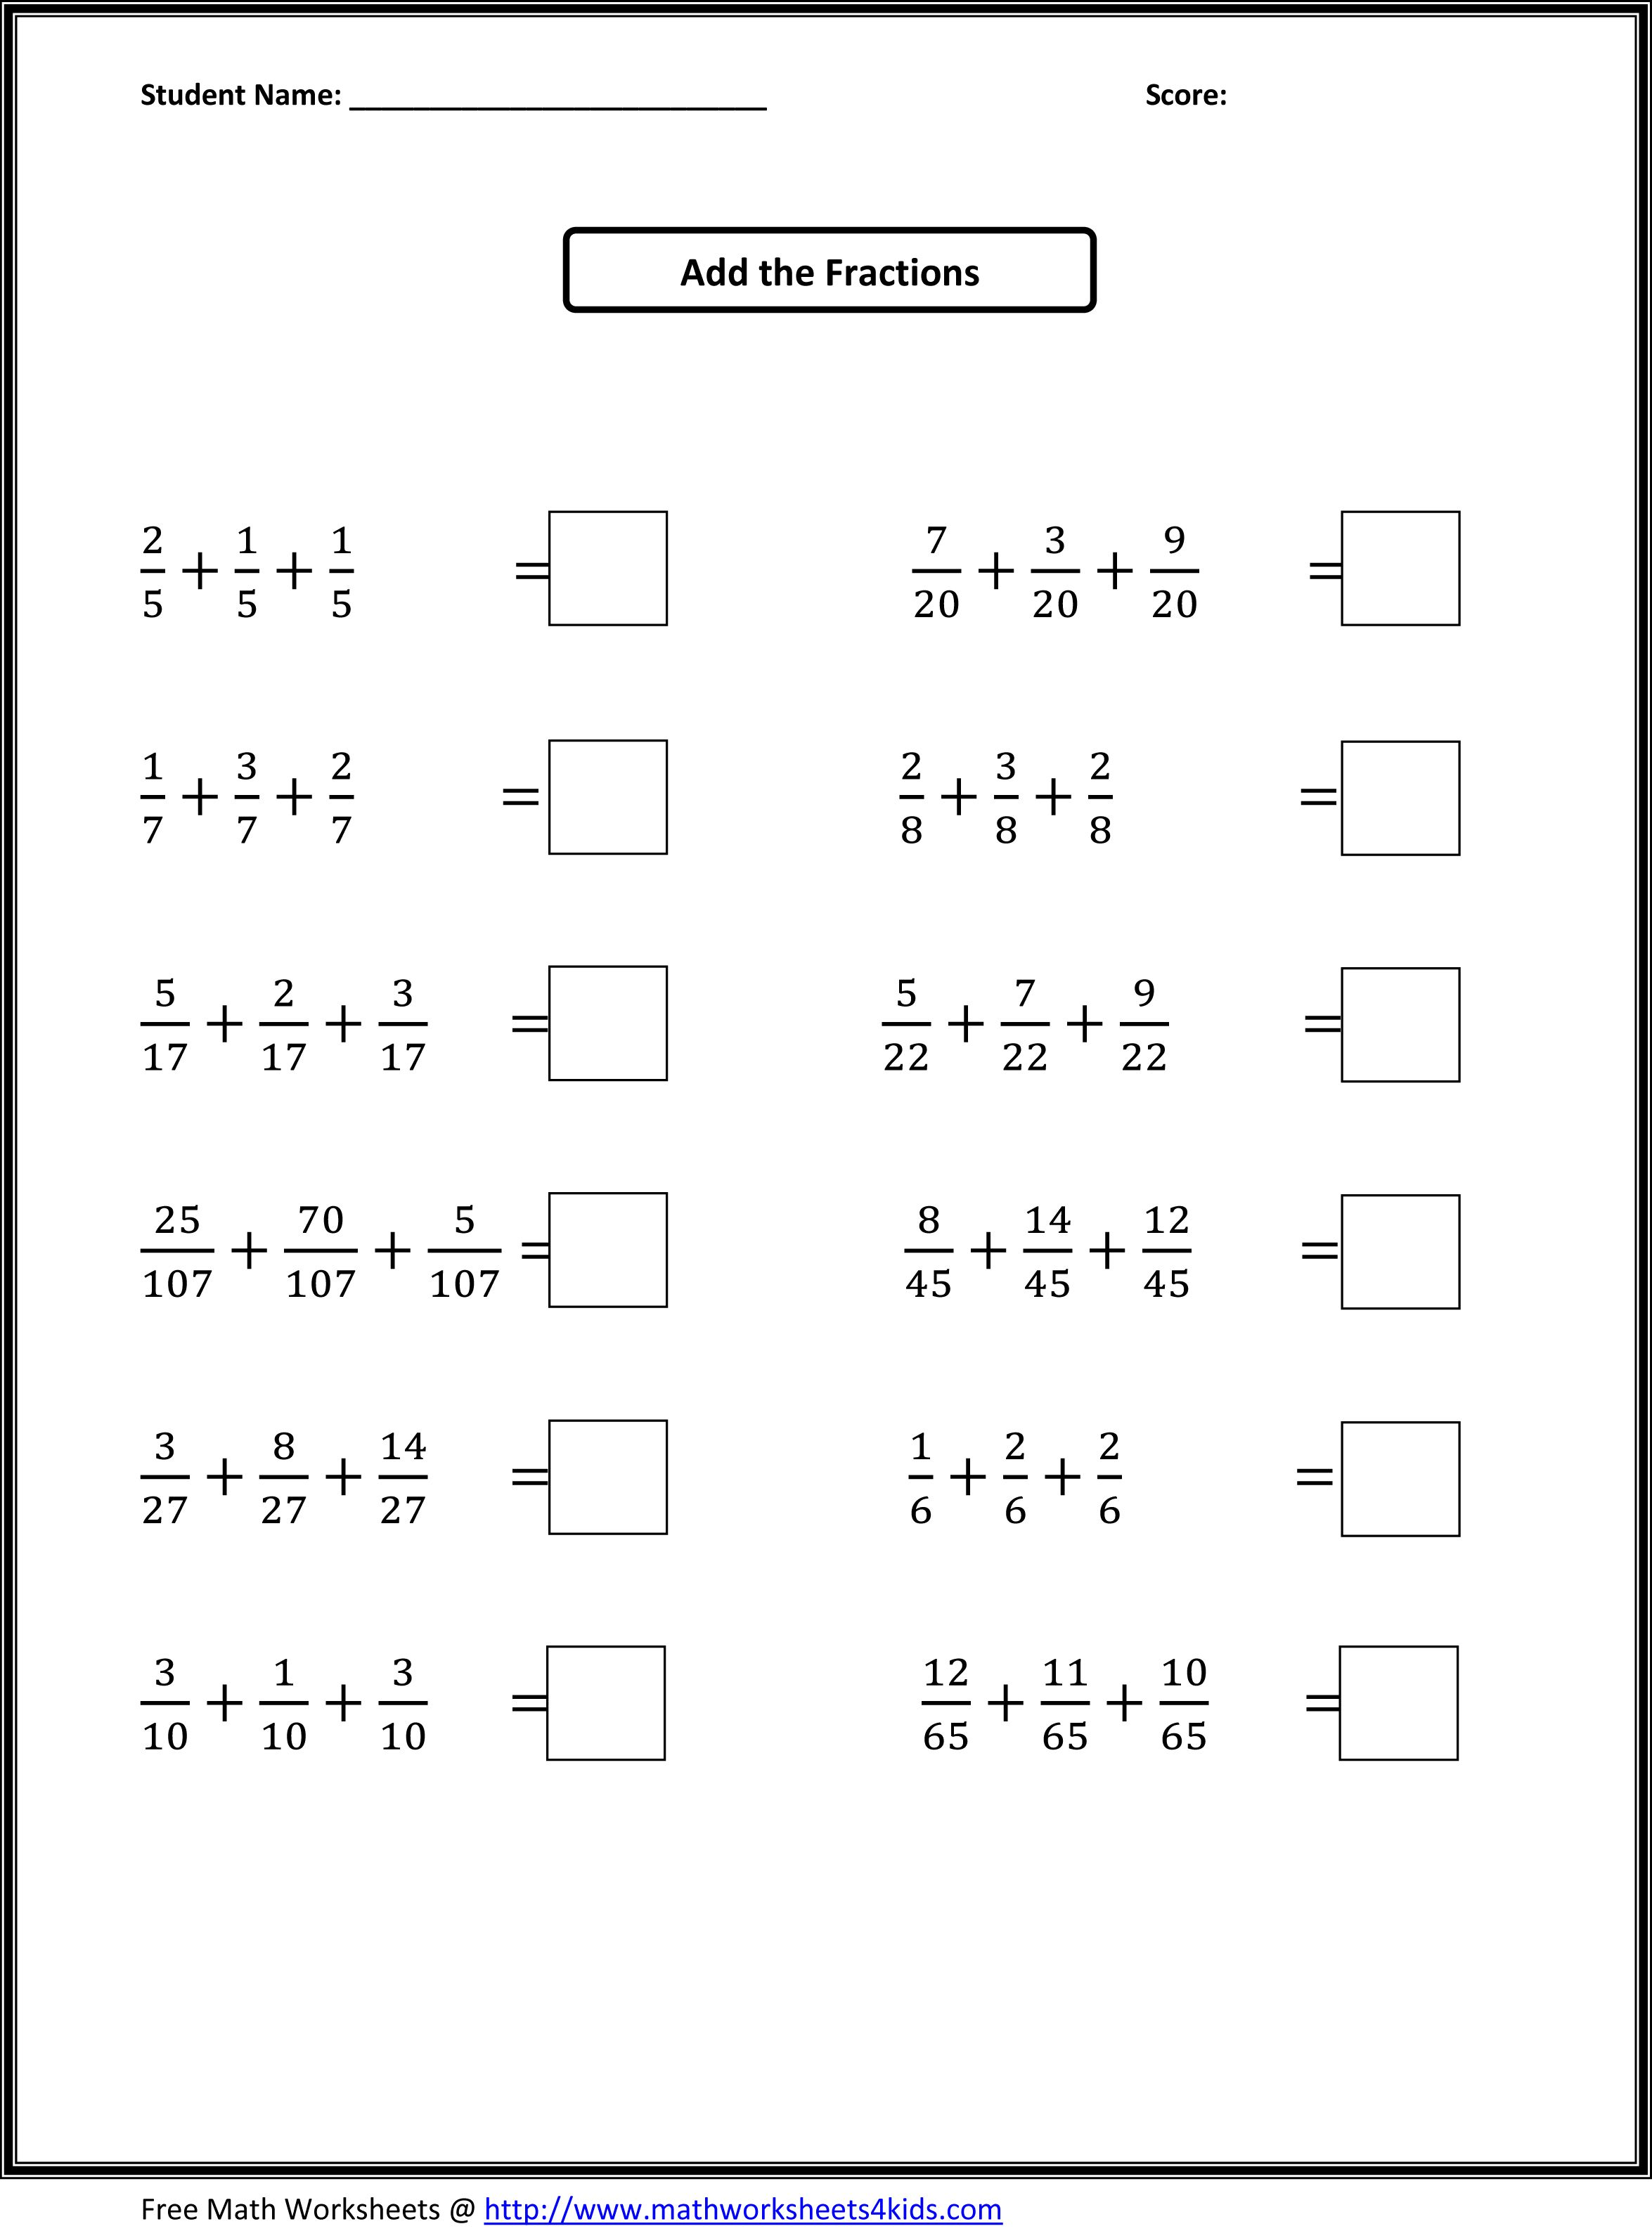 Worksheets Printable 4th Grade Math Worksheets worksheets for all early ed grades topics of math math